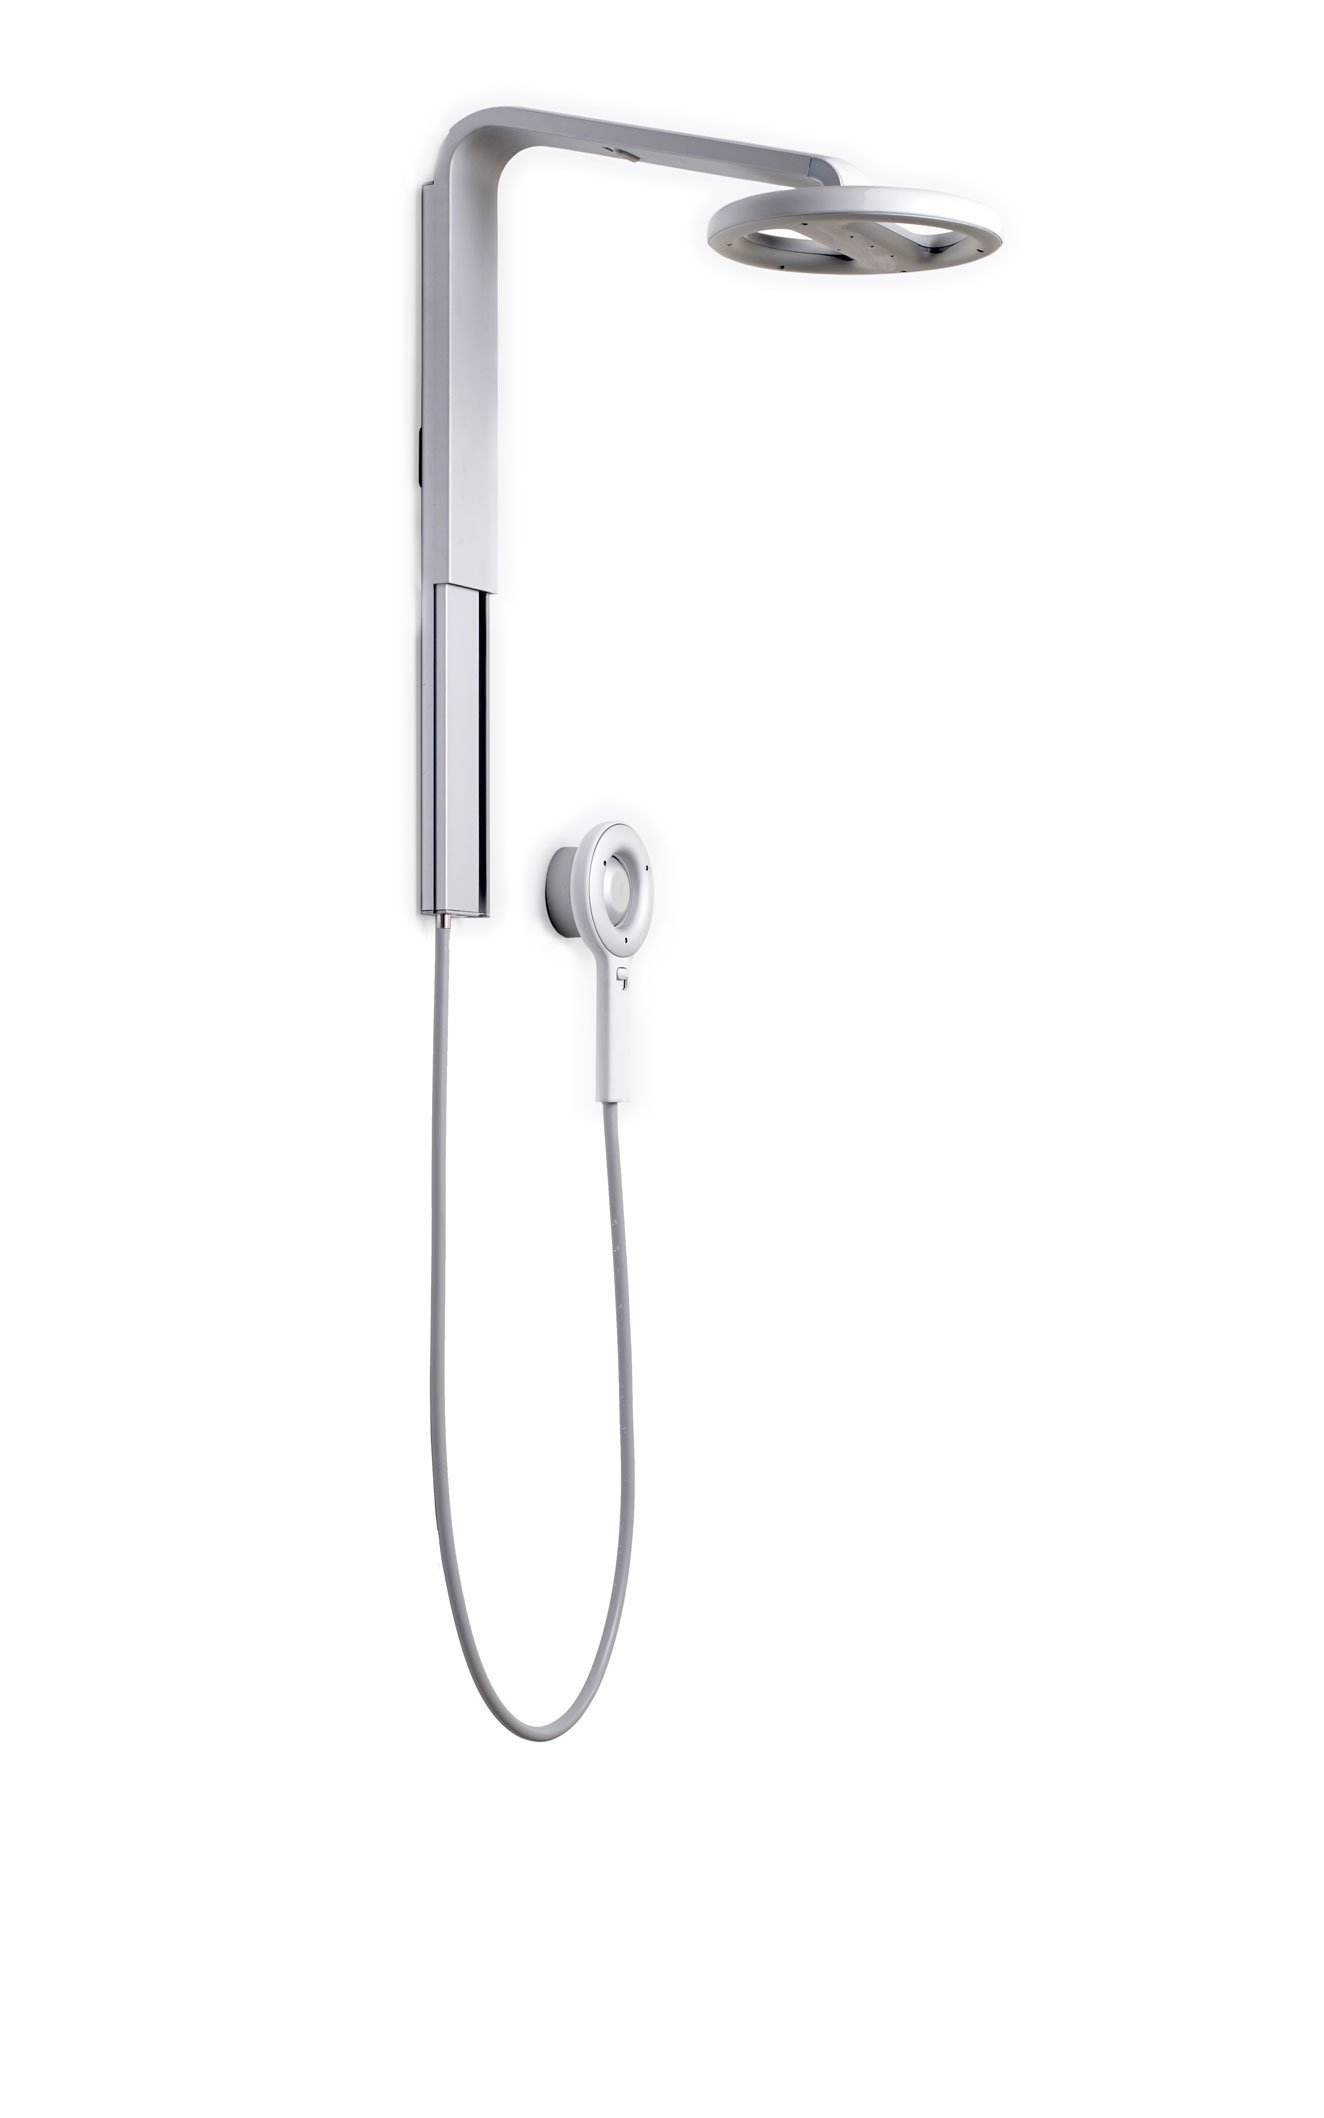 Nebia Spa Shower: Luxury Water Innovation. Sustainable Atomizing Shower System with 10'' Head, Handheld Wand, Adjustable Height. Award Winning Design, Aluminum, Easy DIY Install. Made in USA.